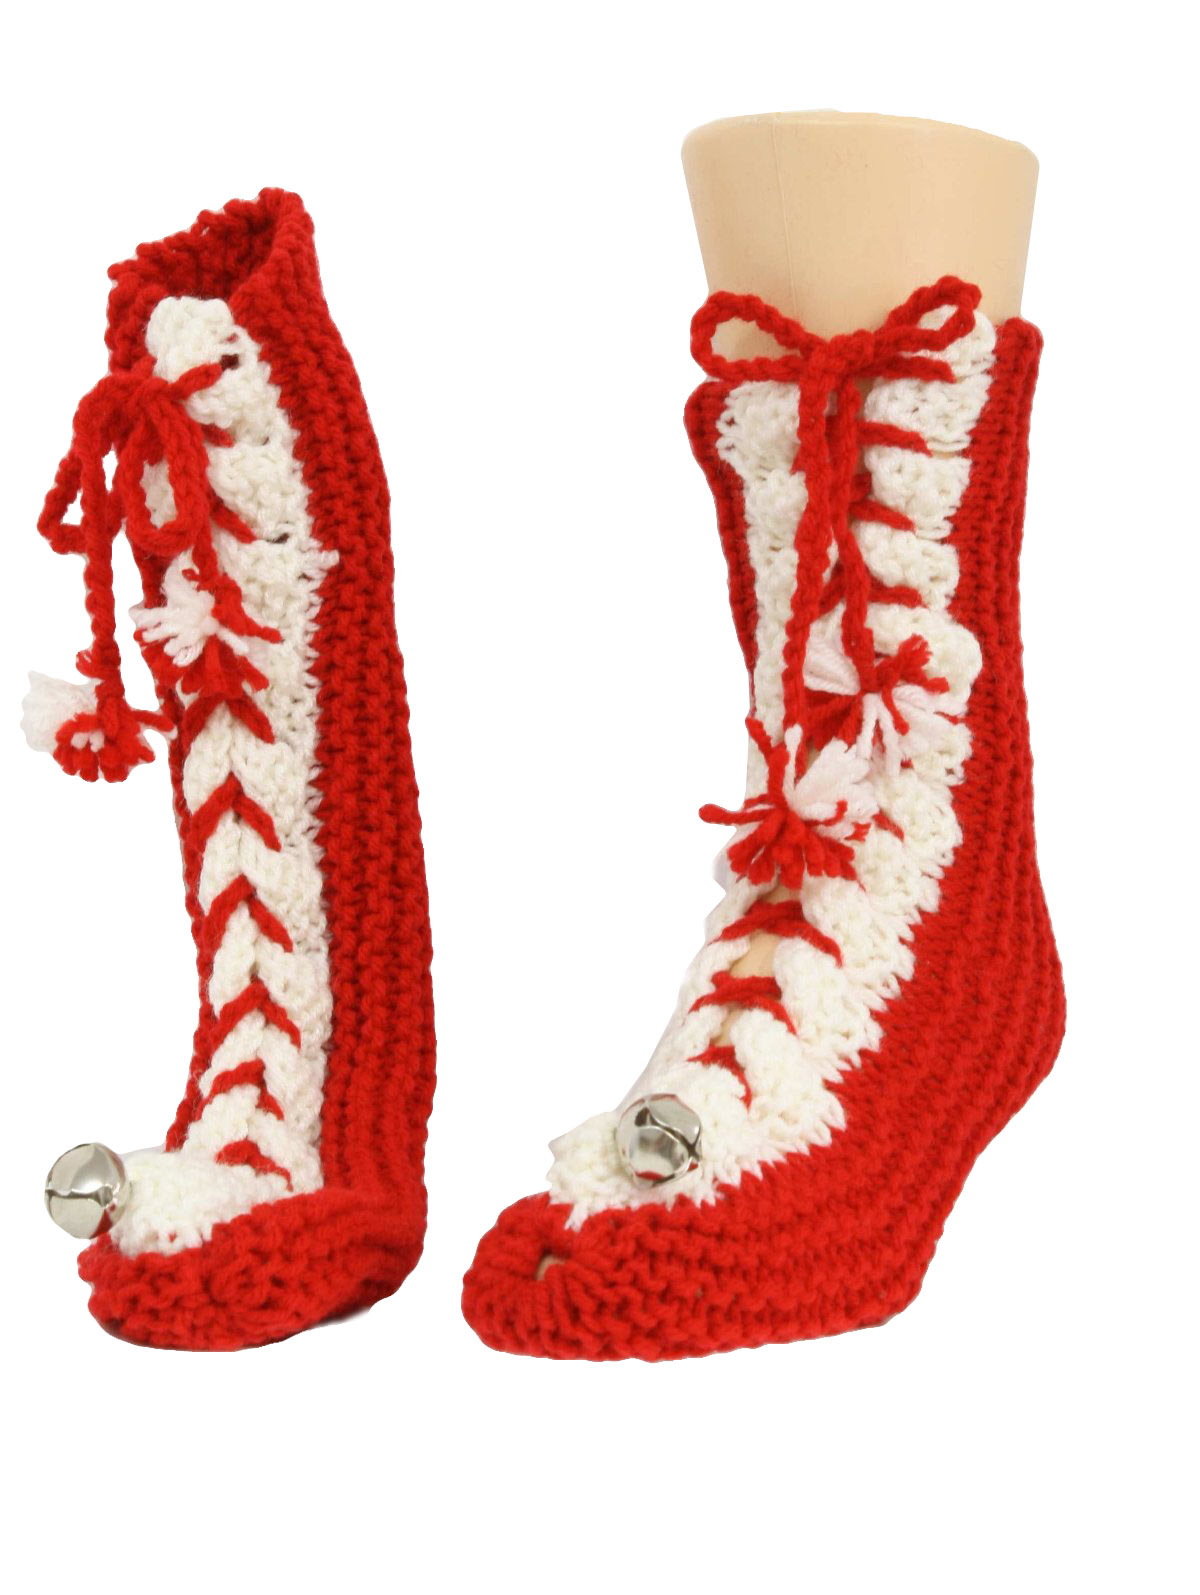 Eighties Ugly Christmas Slippers to Go With Your Ugly Christmas ...